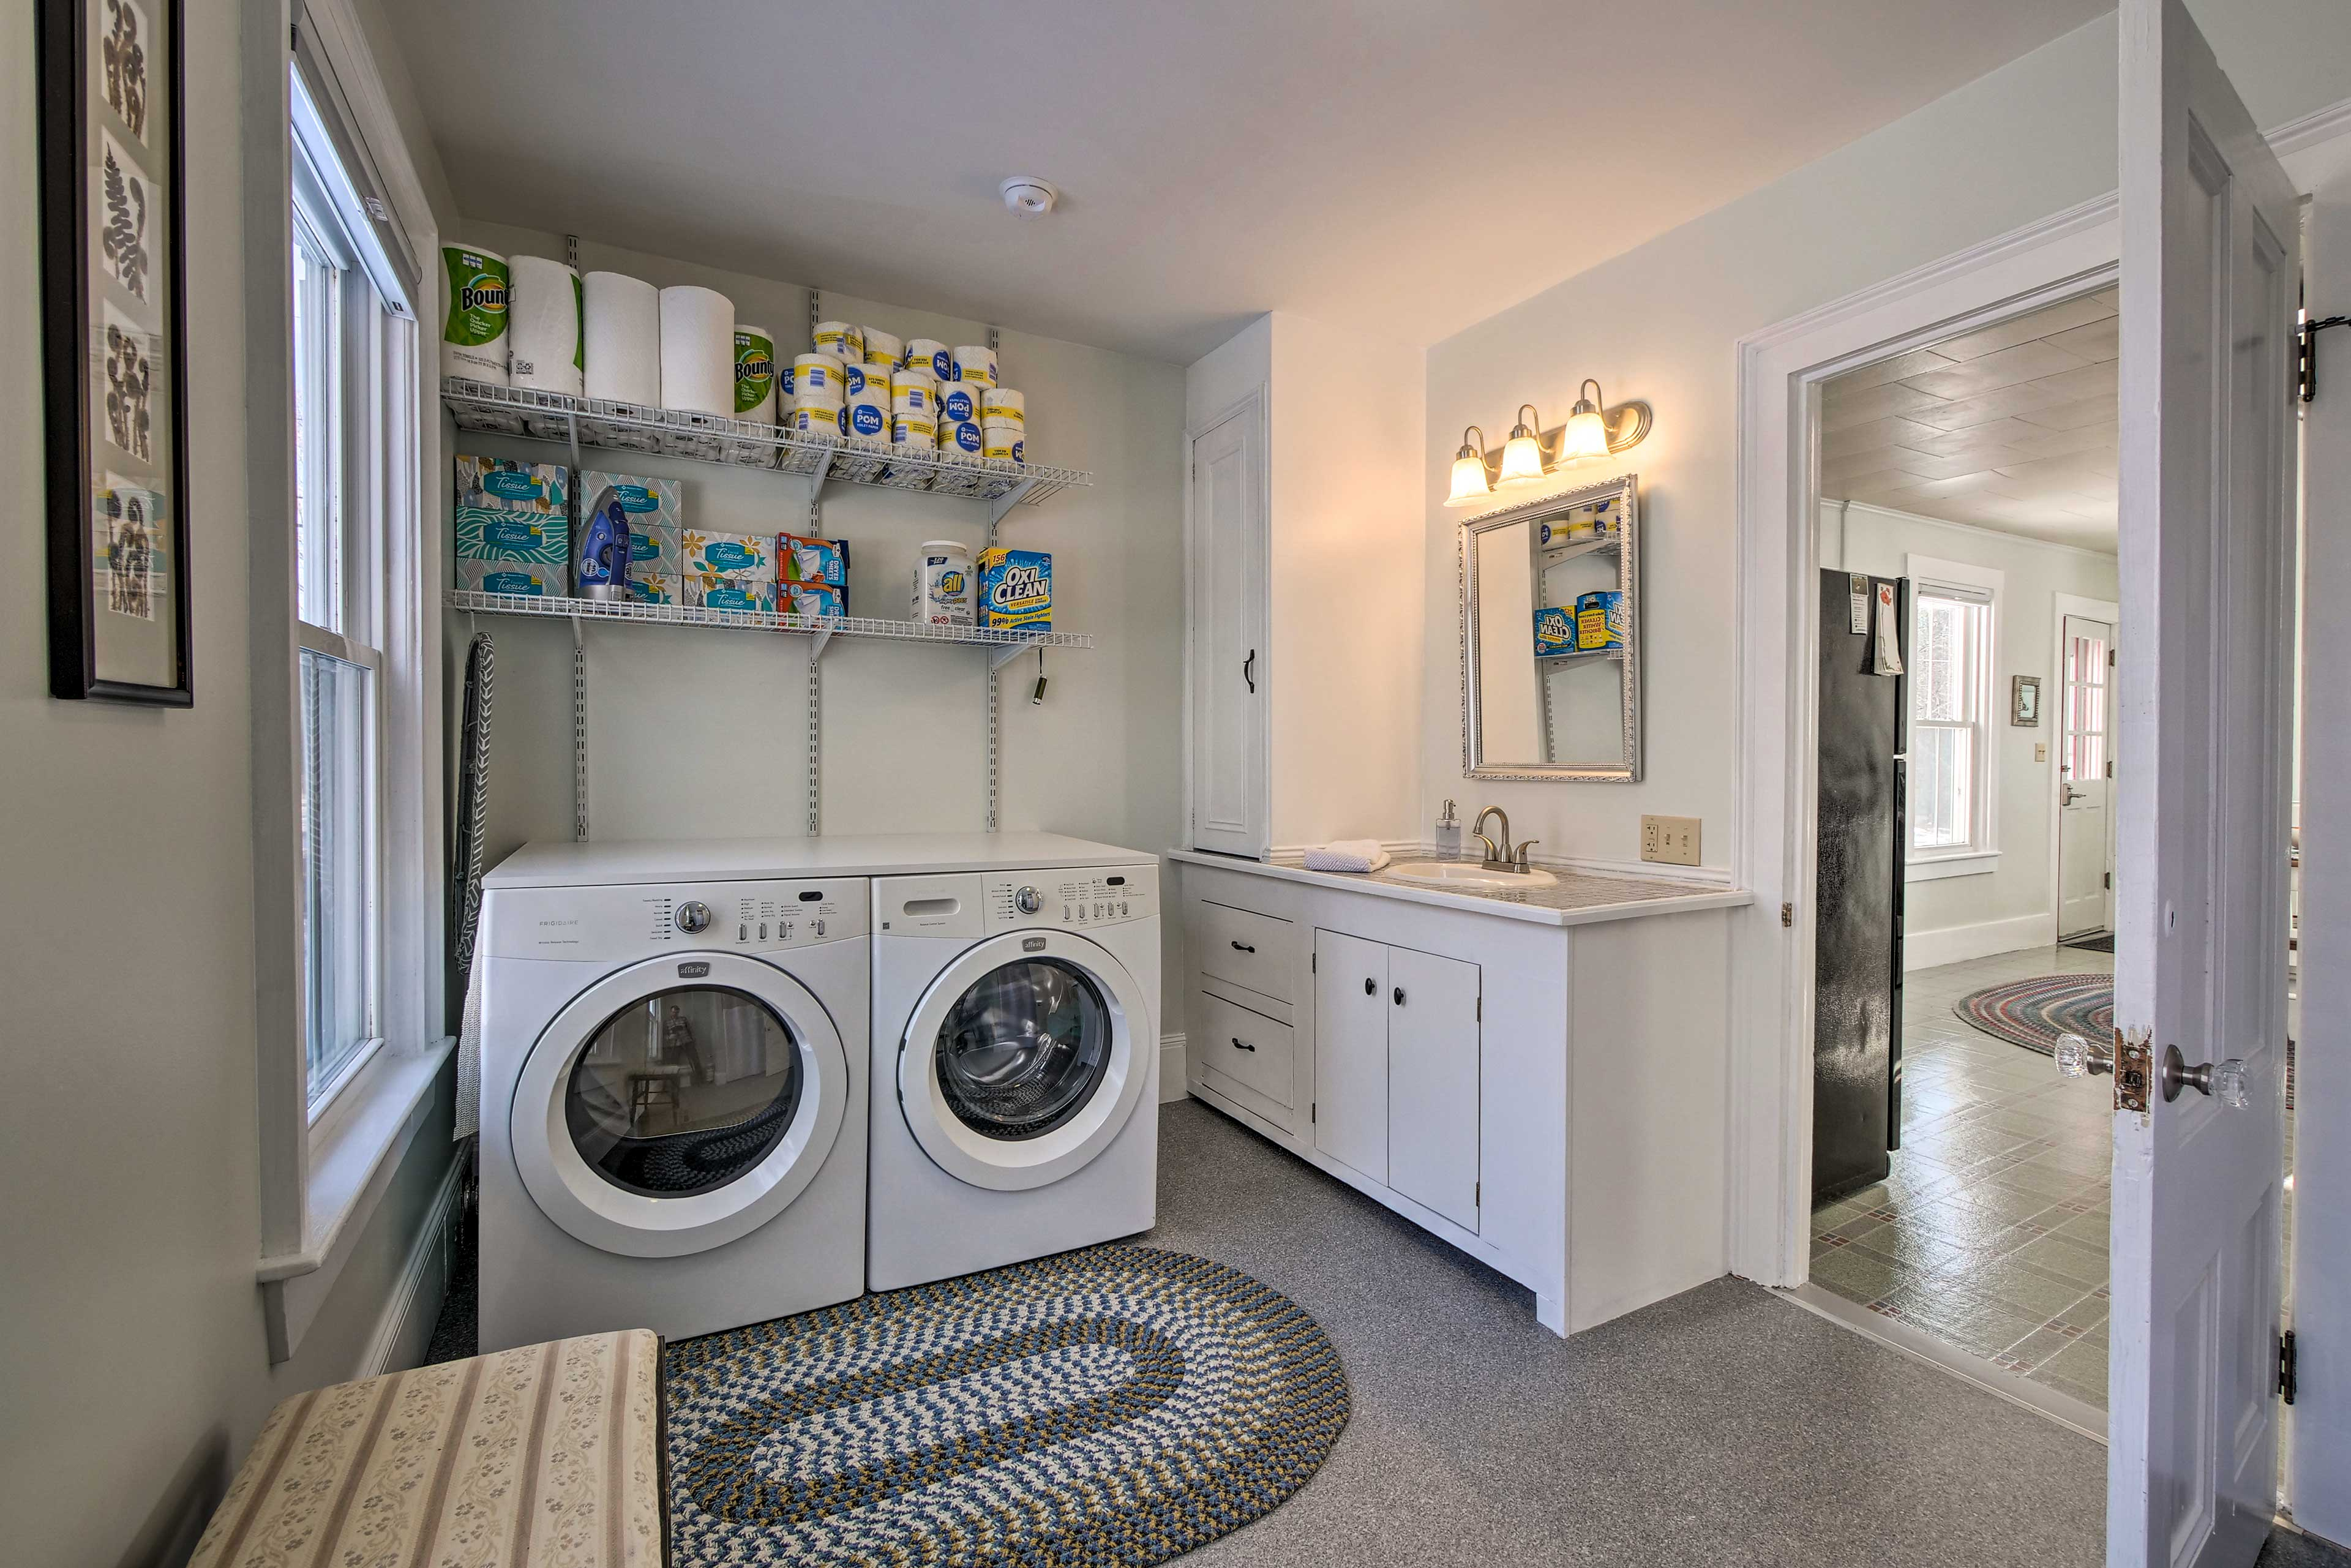 The main bathroom also has laundry machines to keep you looking fresh!